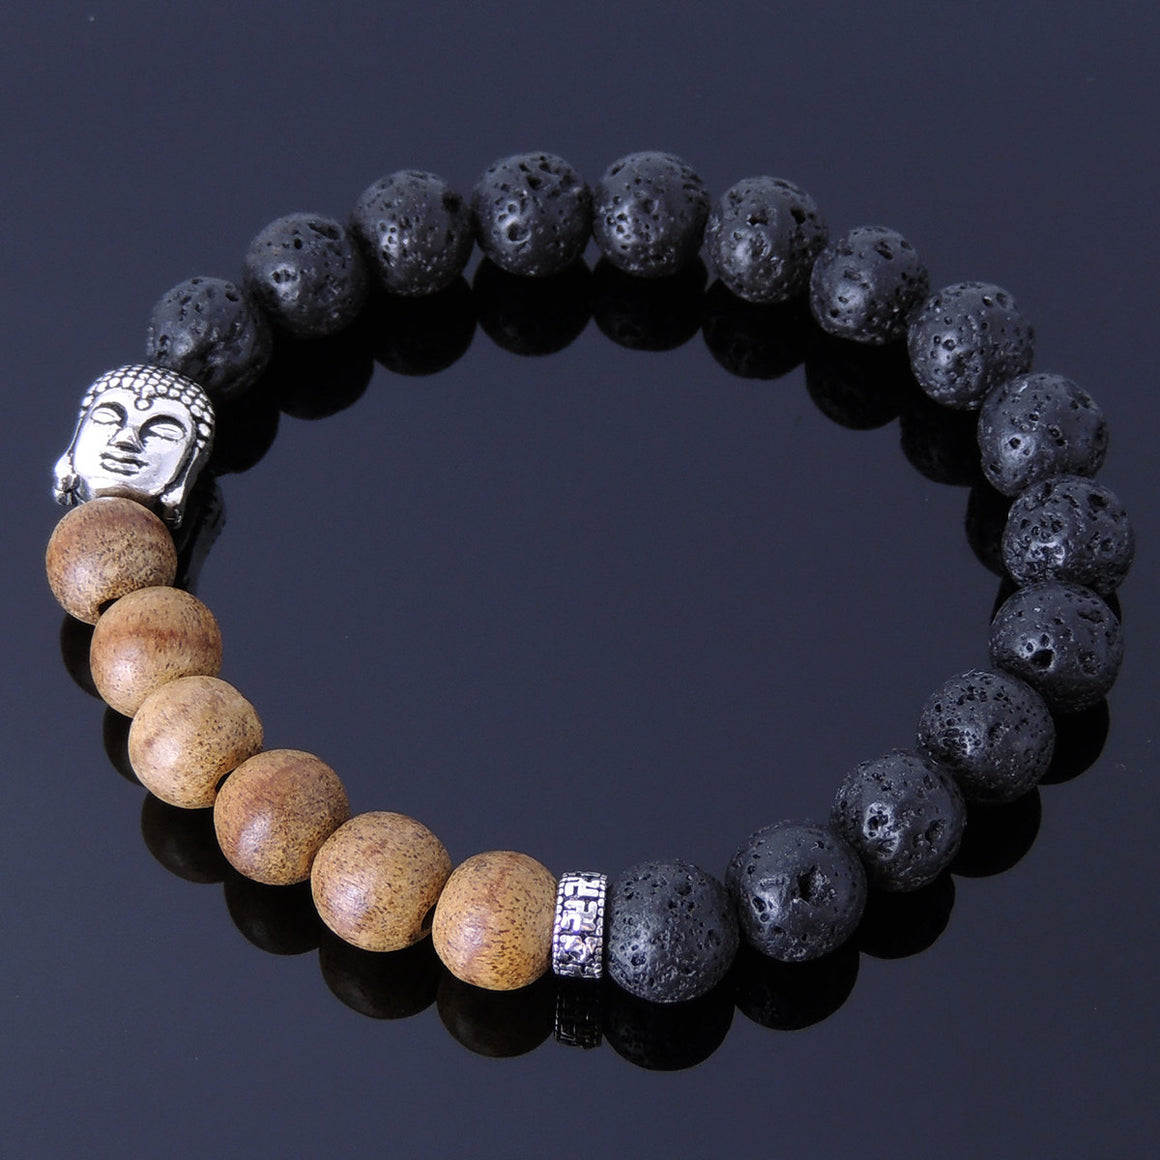 8mm Agarwood & Lava Rock Meditation Bracelet with S925 Sterling Silver Buddhism Spacer & Guanyin Buddha Bead - Handmade by Gem & Silver BR291